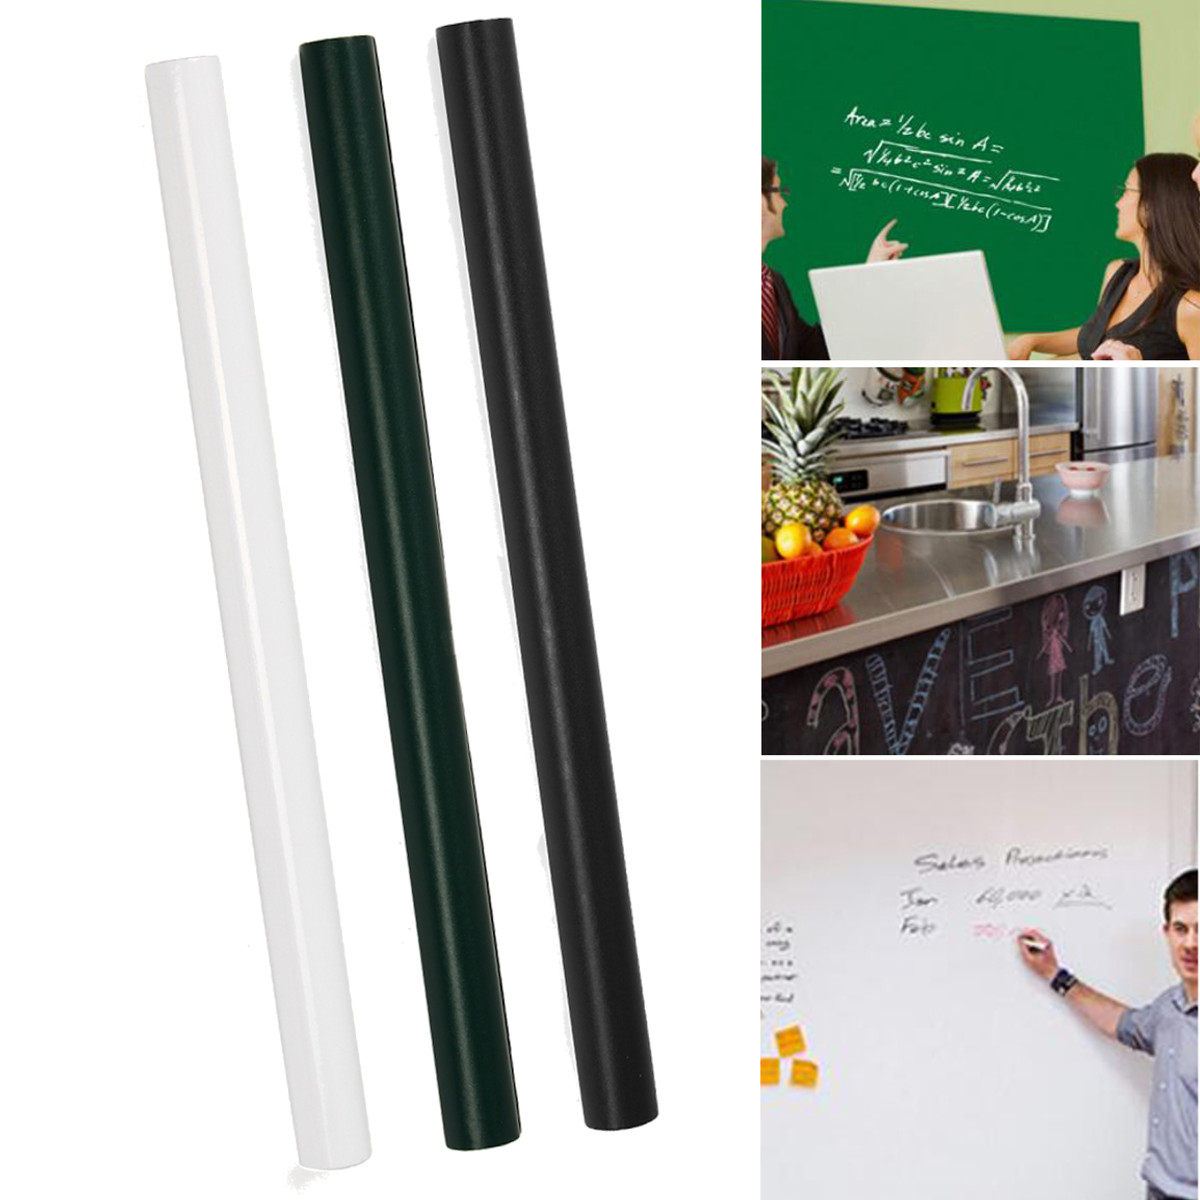 Wallpaper Whiteboard Sticker White Board Self-adhesive Writing Memo Board Removable Wall Sticker For Office School Home